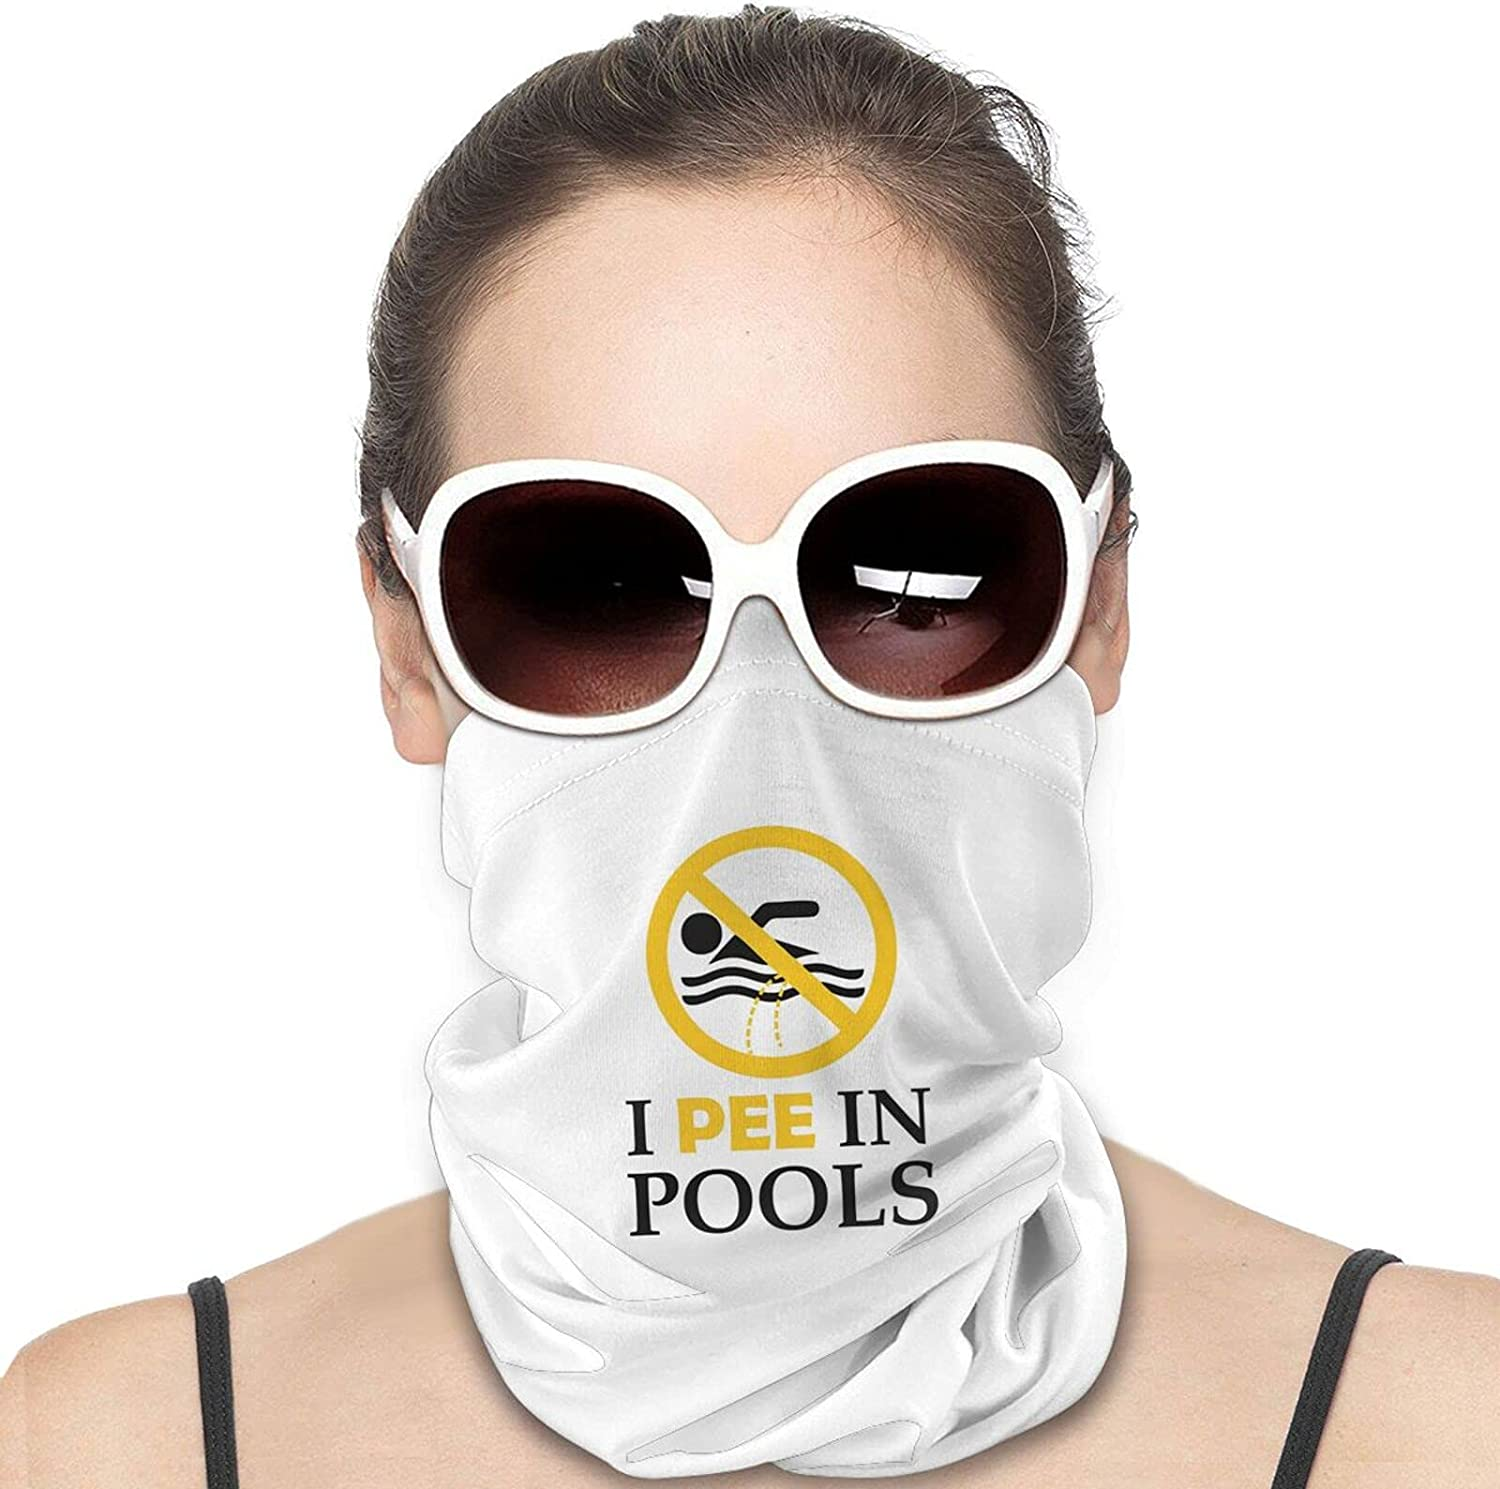 I Pee in Pools Round Neck Gaiter Bandnas Face Cover Uv Protection Prevent bask in Ice Scarf Headbands Perfect for Motorcycle Cycling Running Festival Raves Outdoors